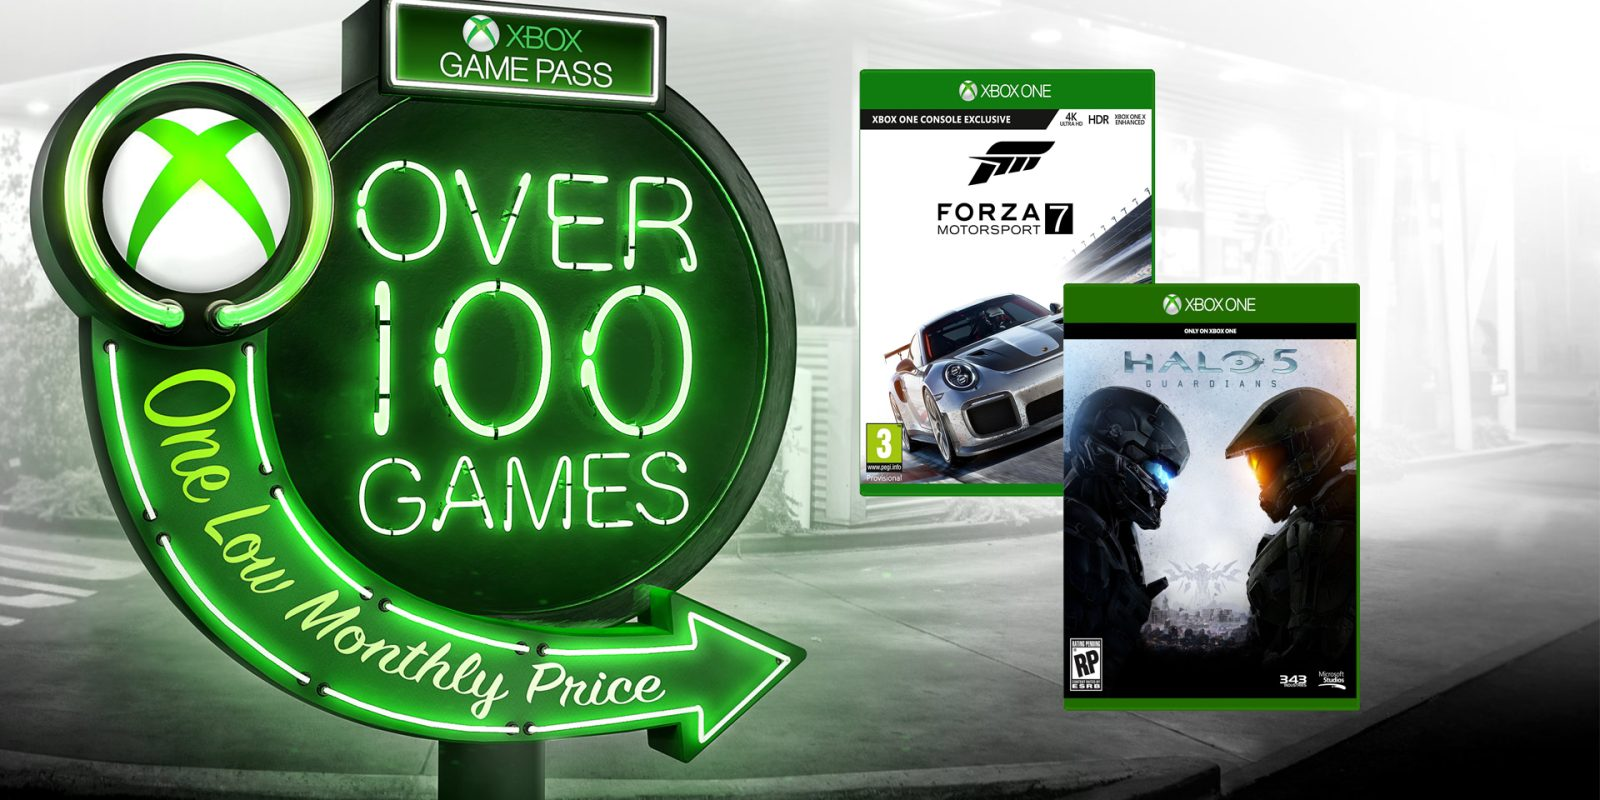 Xbox Game Pass will now include Day 1 Halo, Forza, GOW